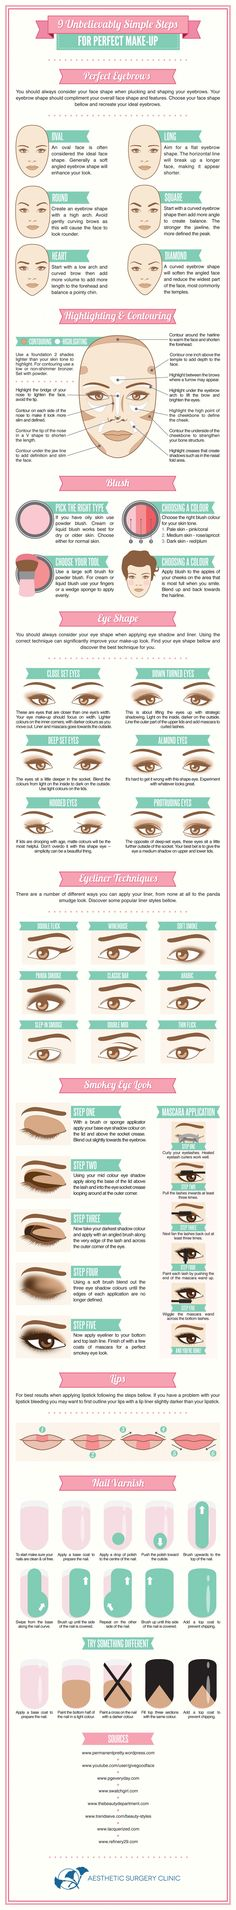 9-unbelievably-simple-steps-for-perfect-make-up-visual.ly-1399221919n8k4g.jpg 1 500×12 140 pixels